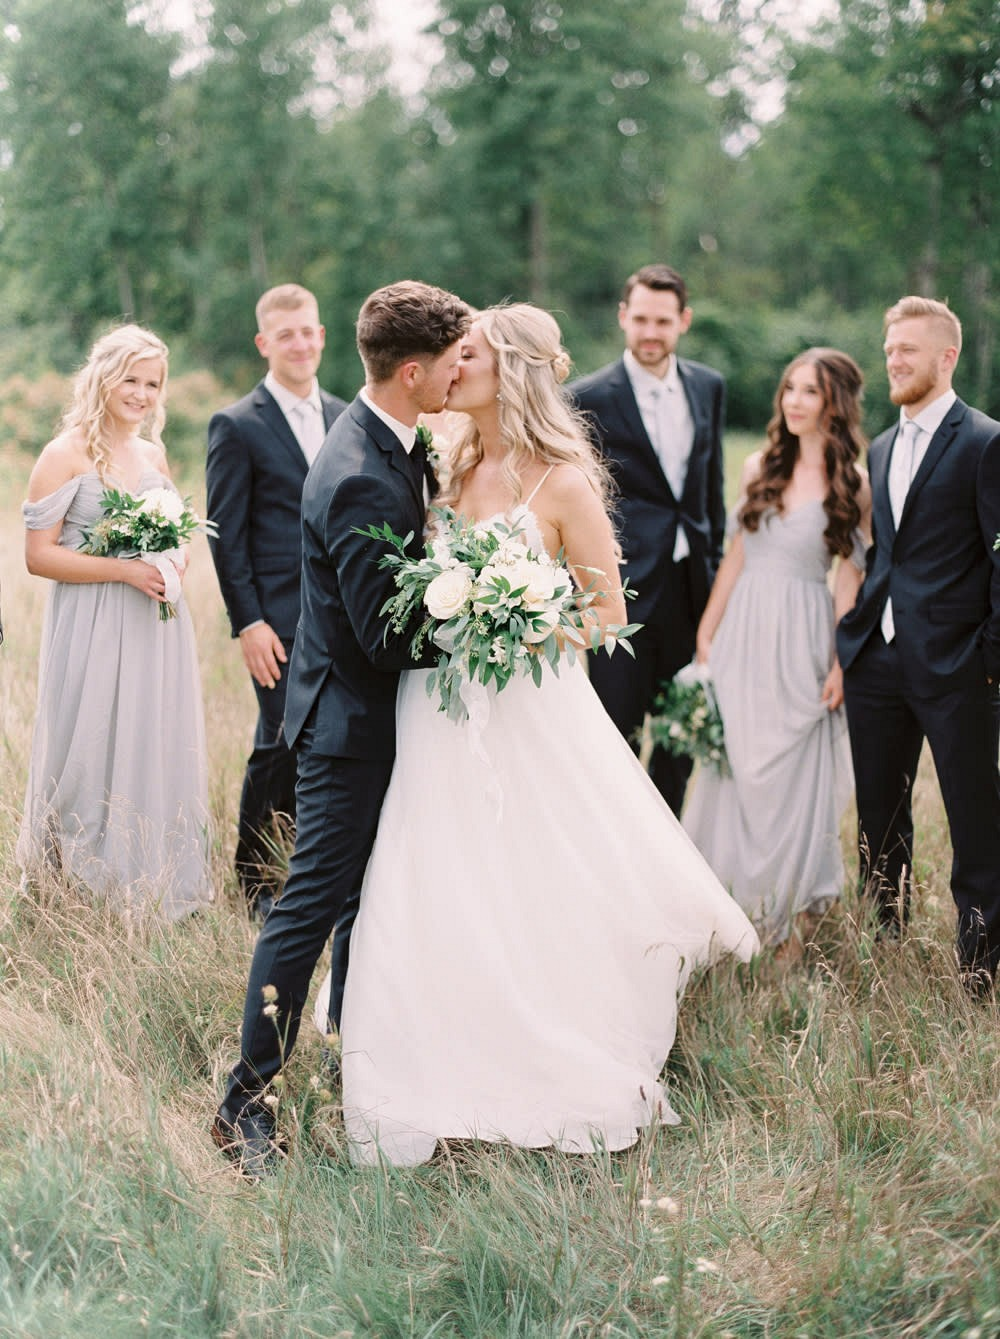 Barn Real Wedding with Green & White Florals